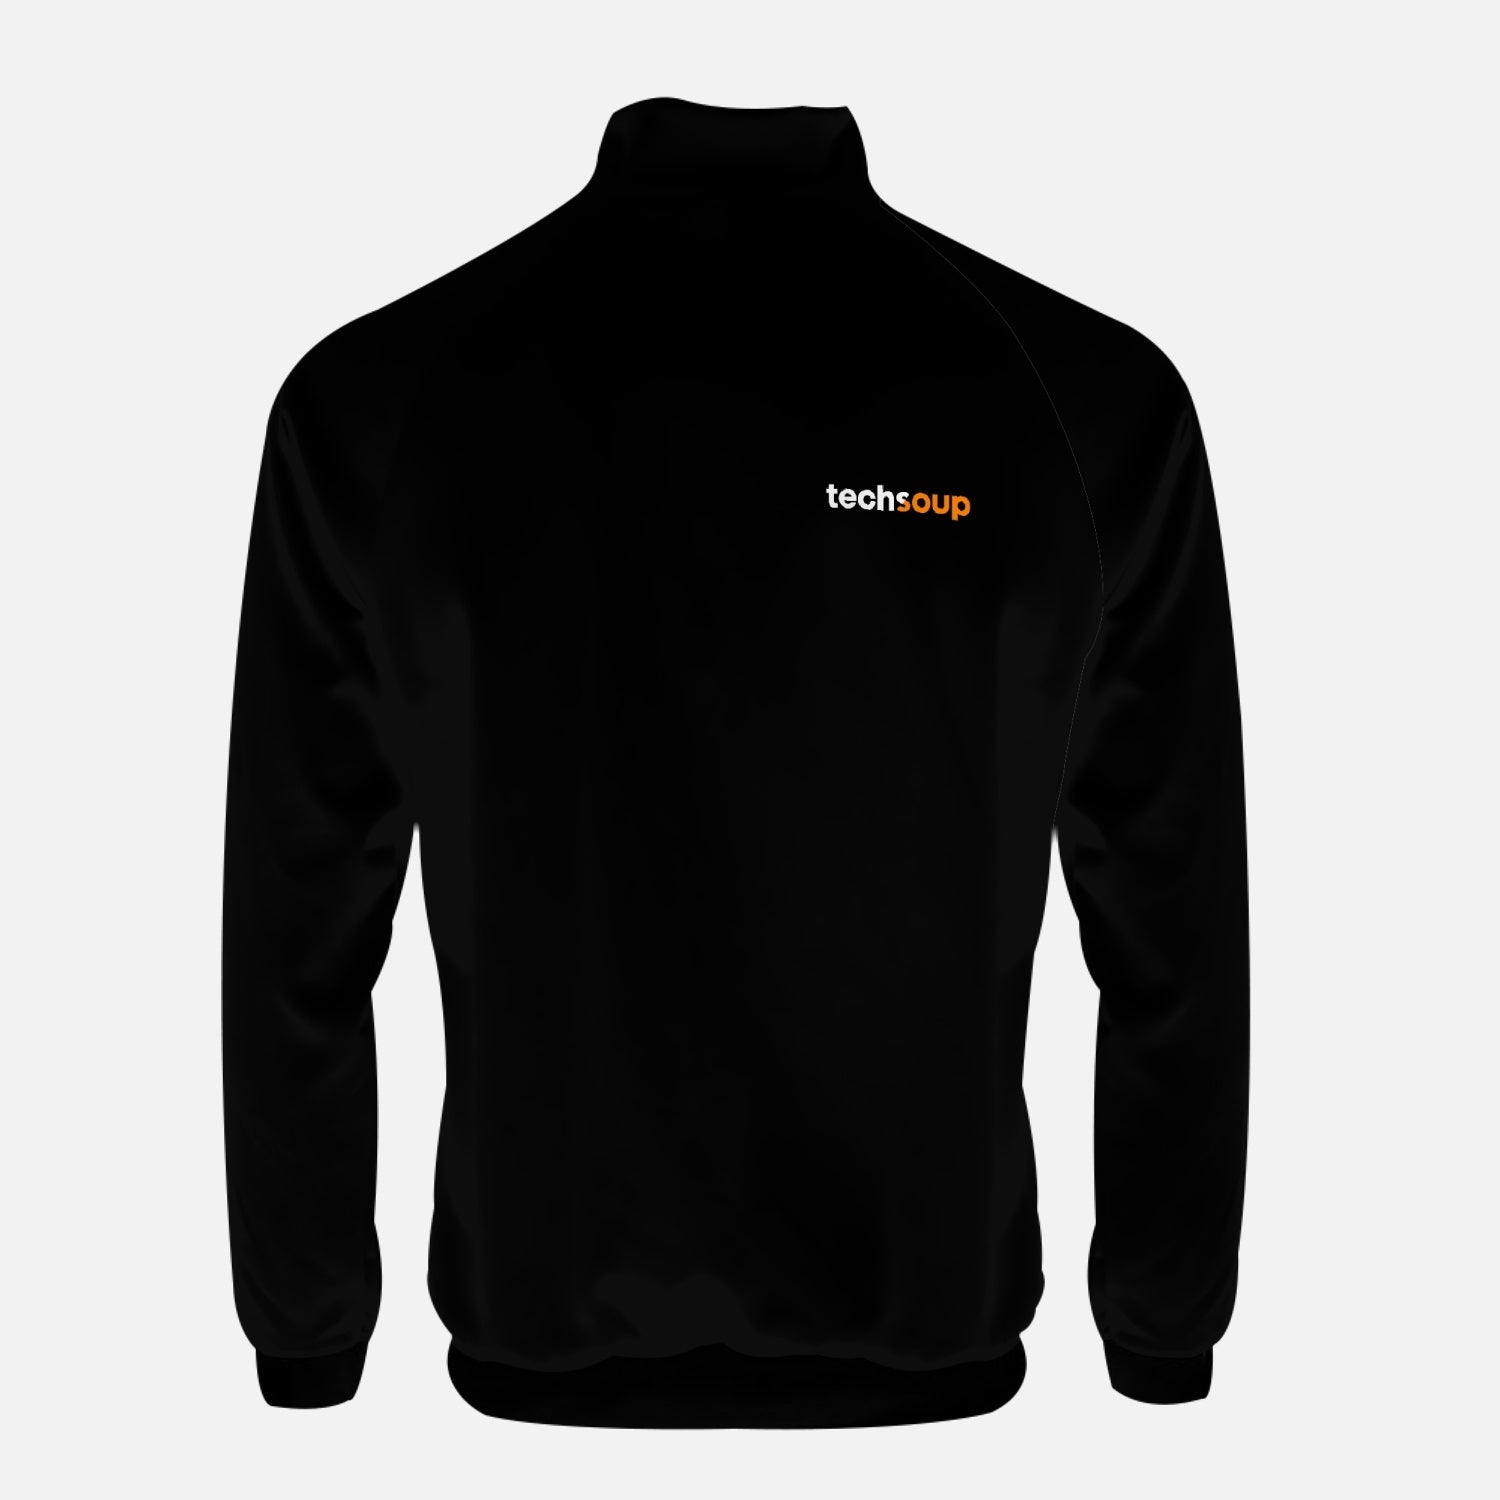 TechSoup Black Zip-Up Jacket (FREE SHIPPING)